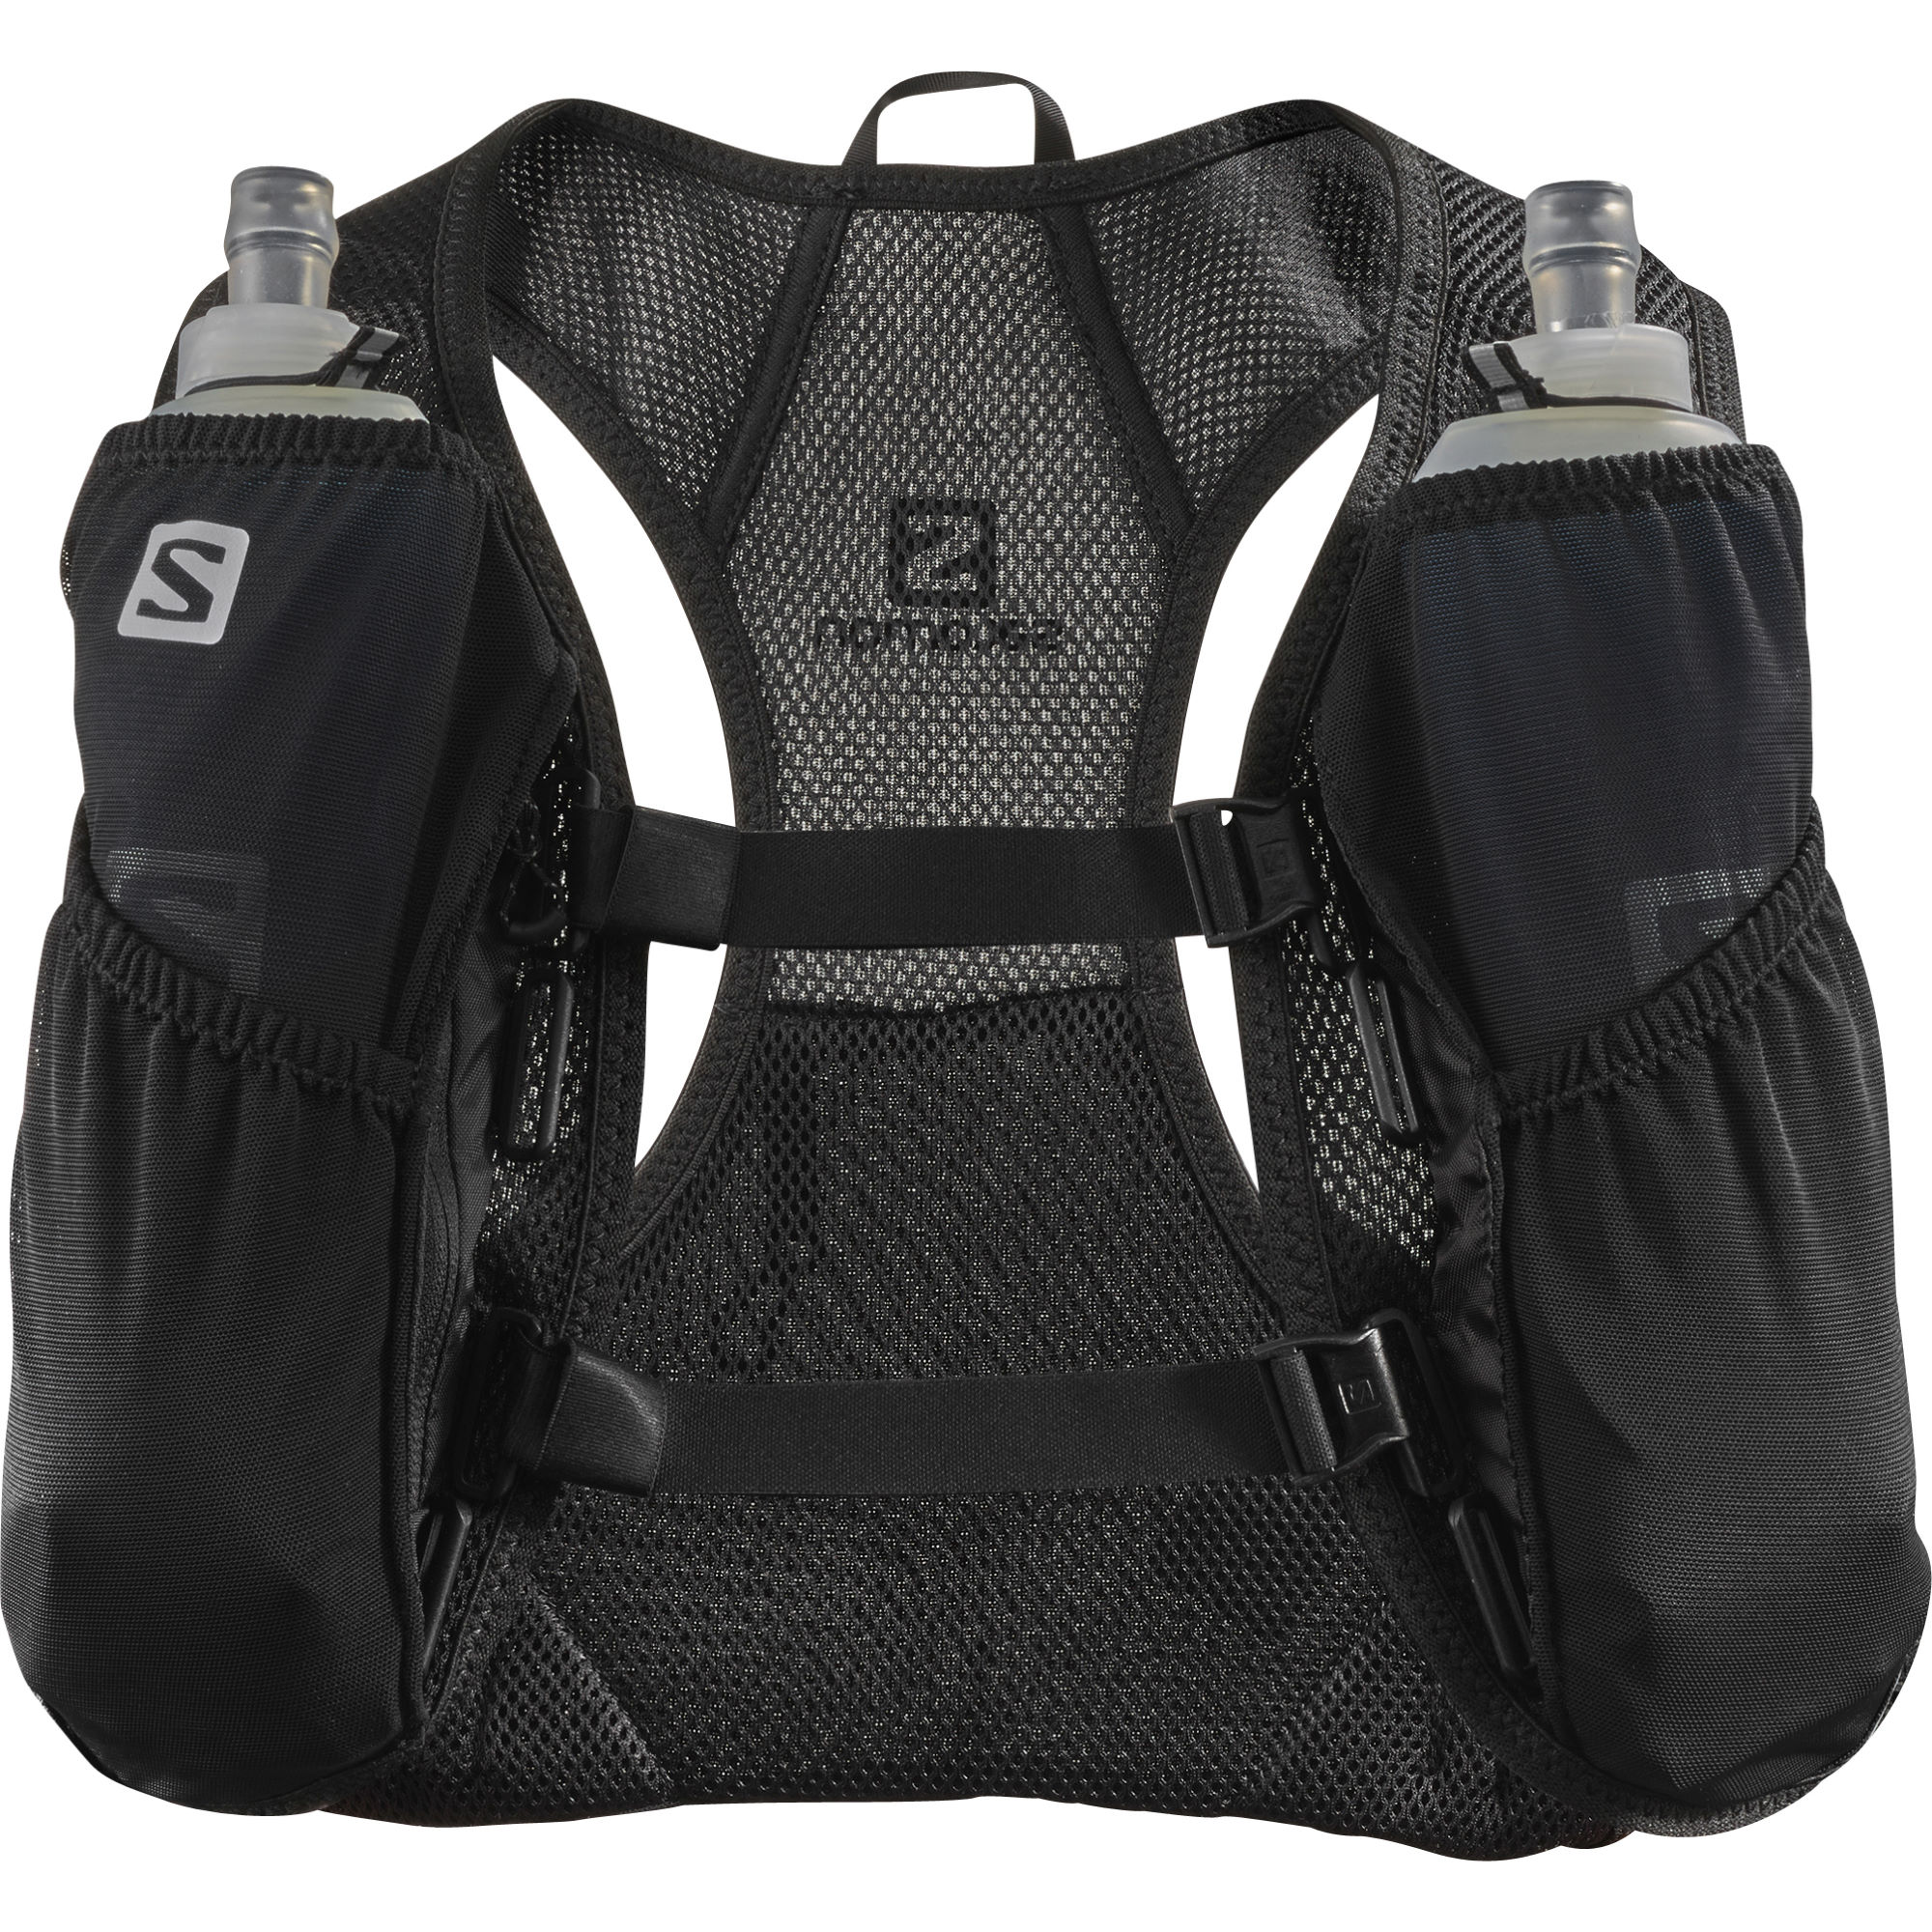 best running backpacks, rucksacks, bags - salomon